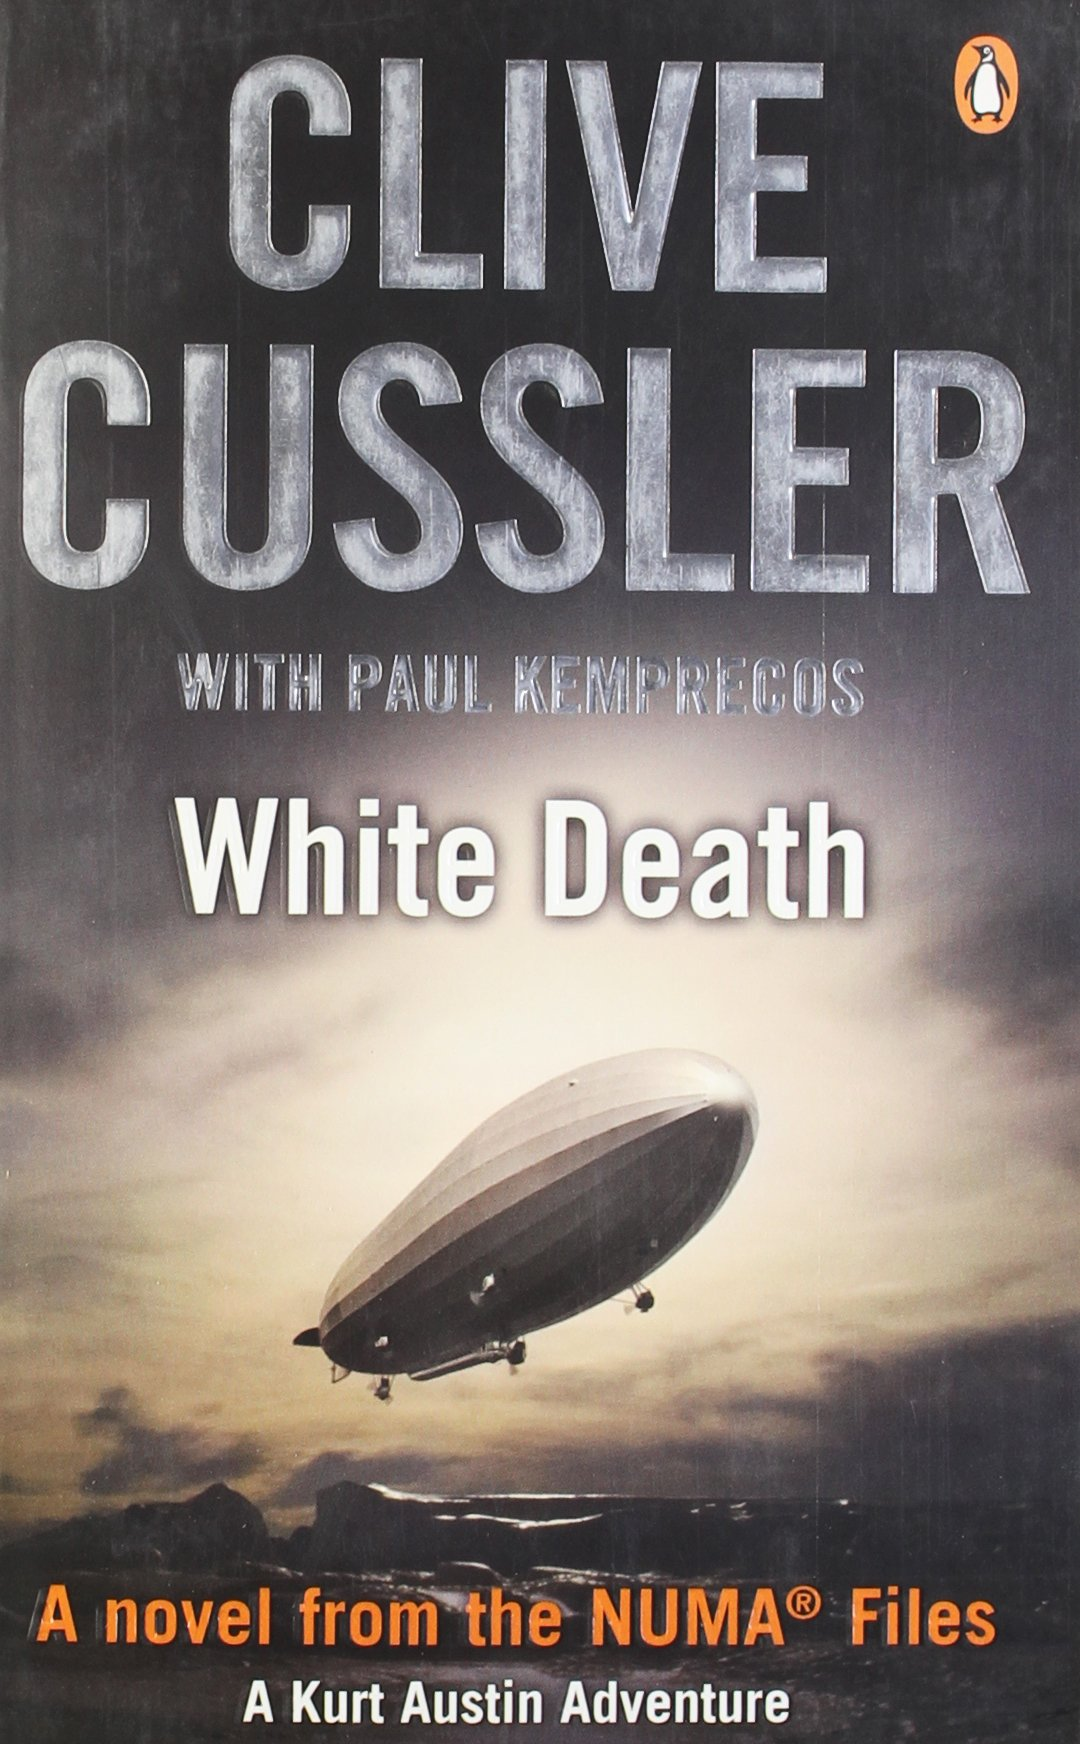 Book Cover of White Death